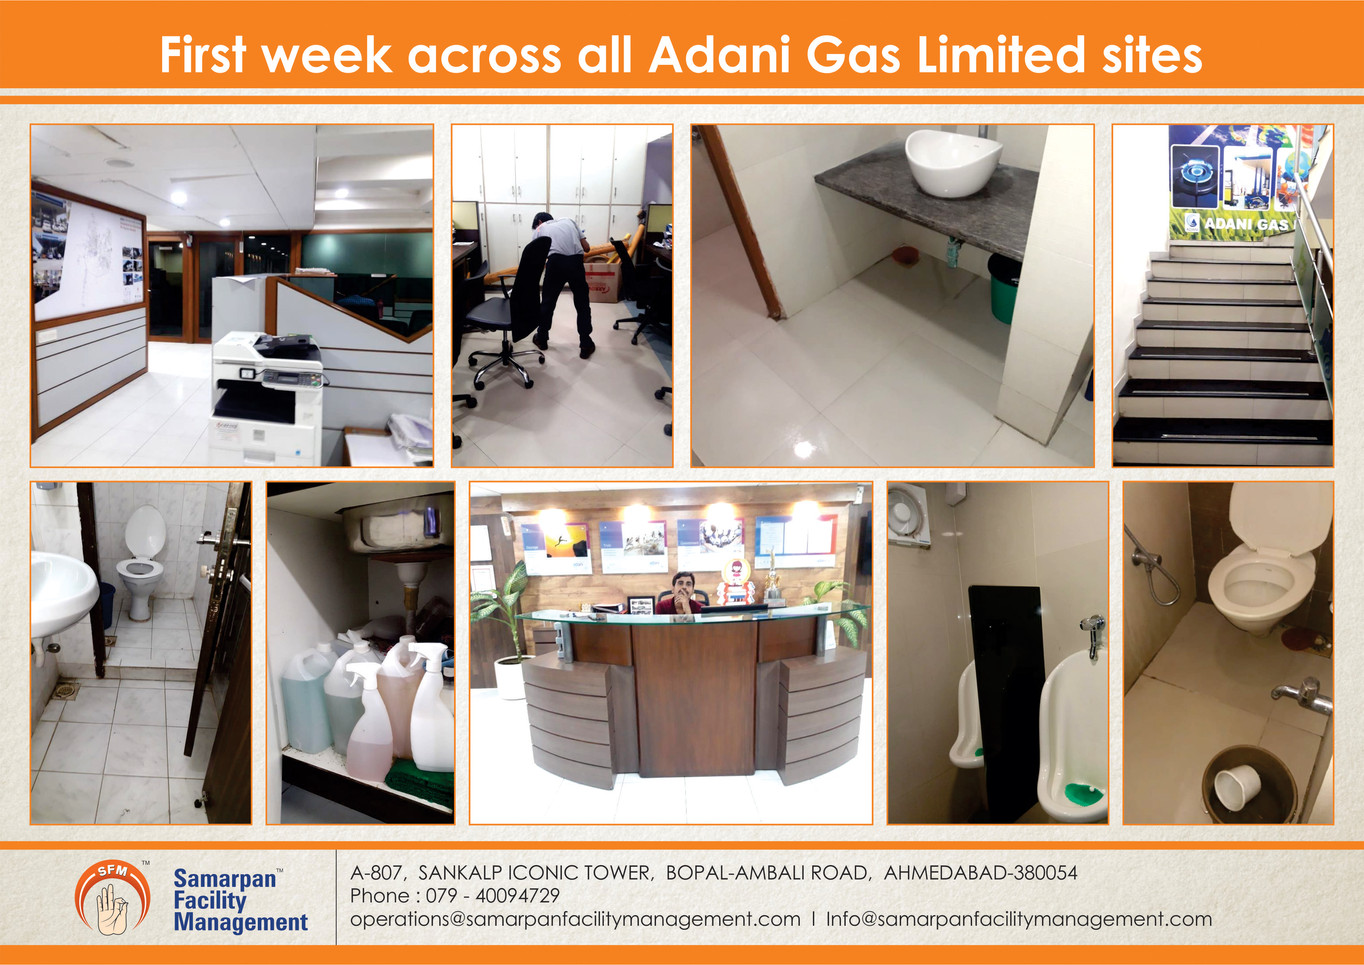 First week across all Adani Gas Limited sites